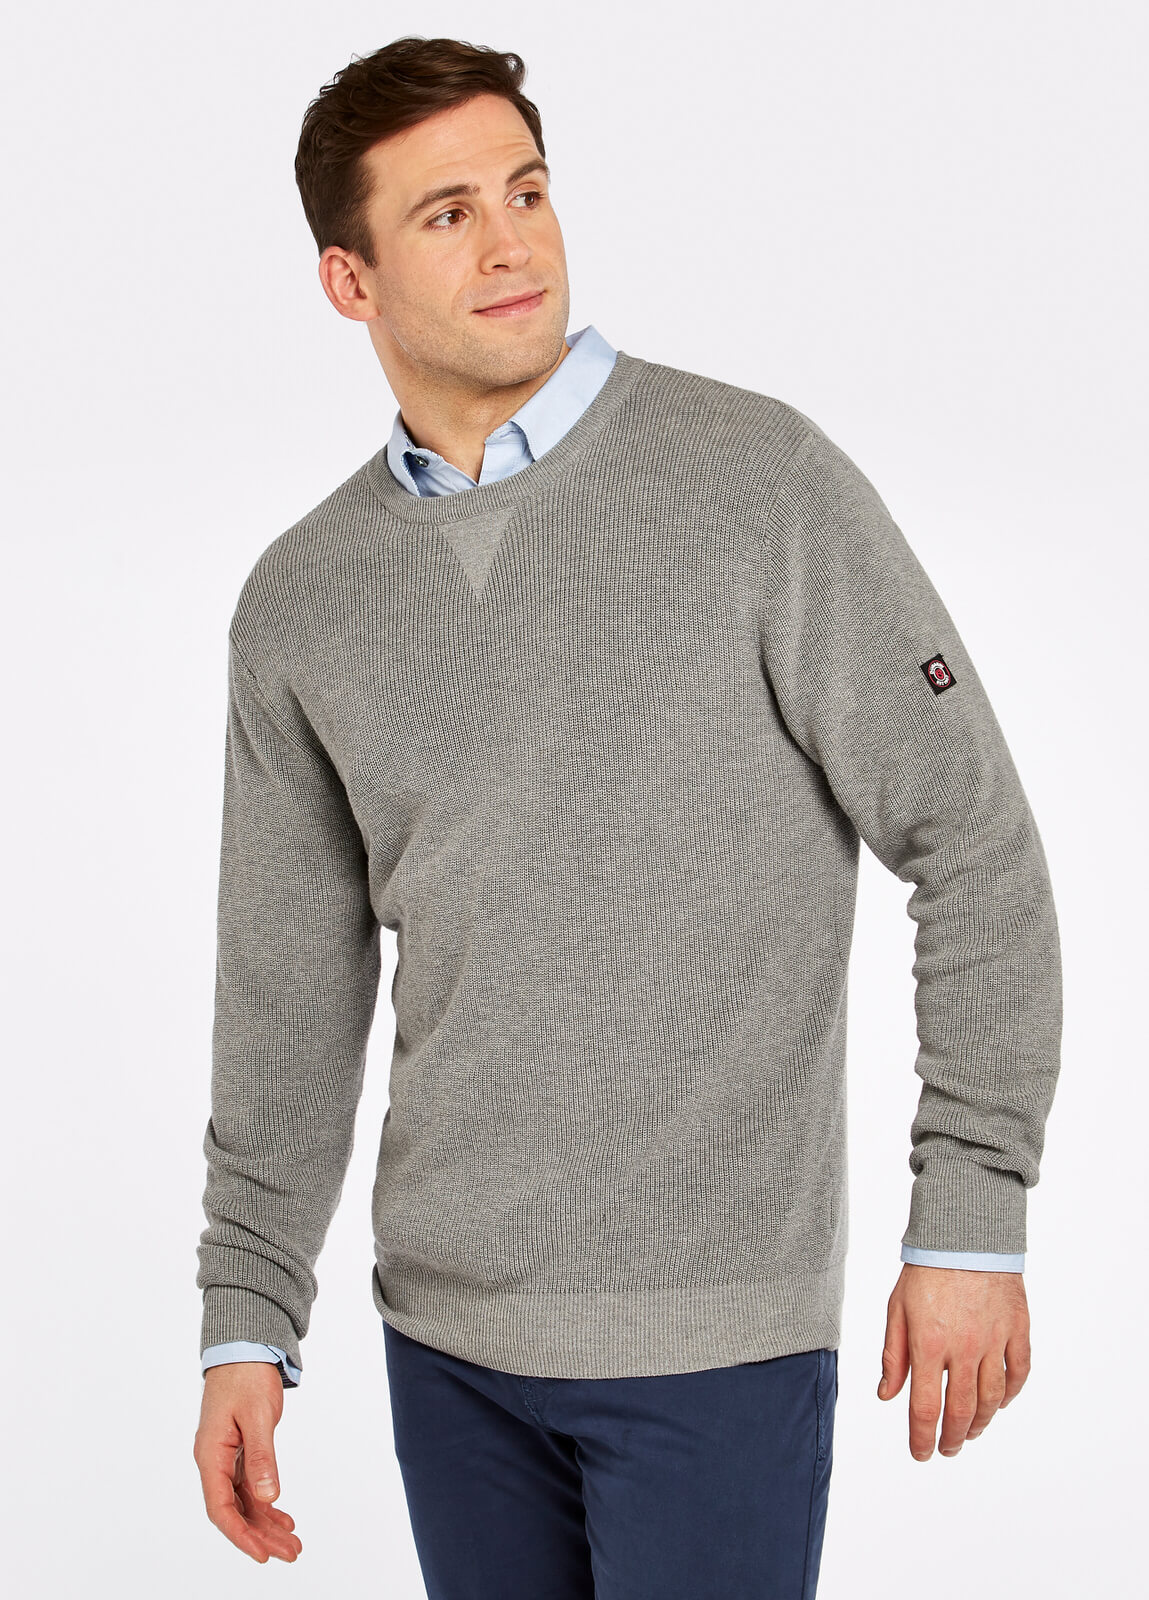 Garrycastle Sweater - Grey